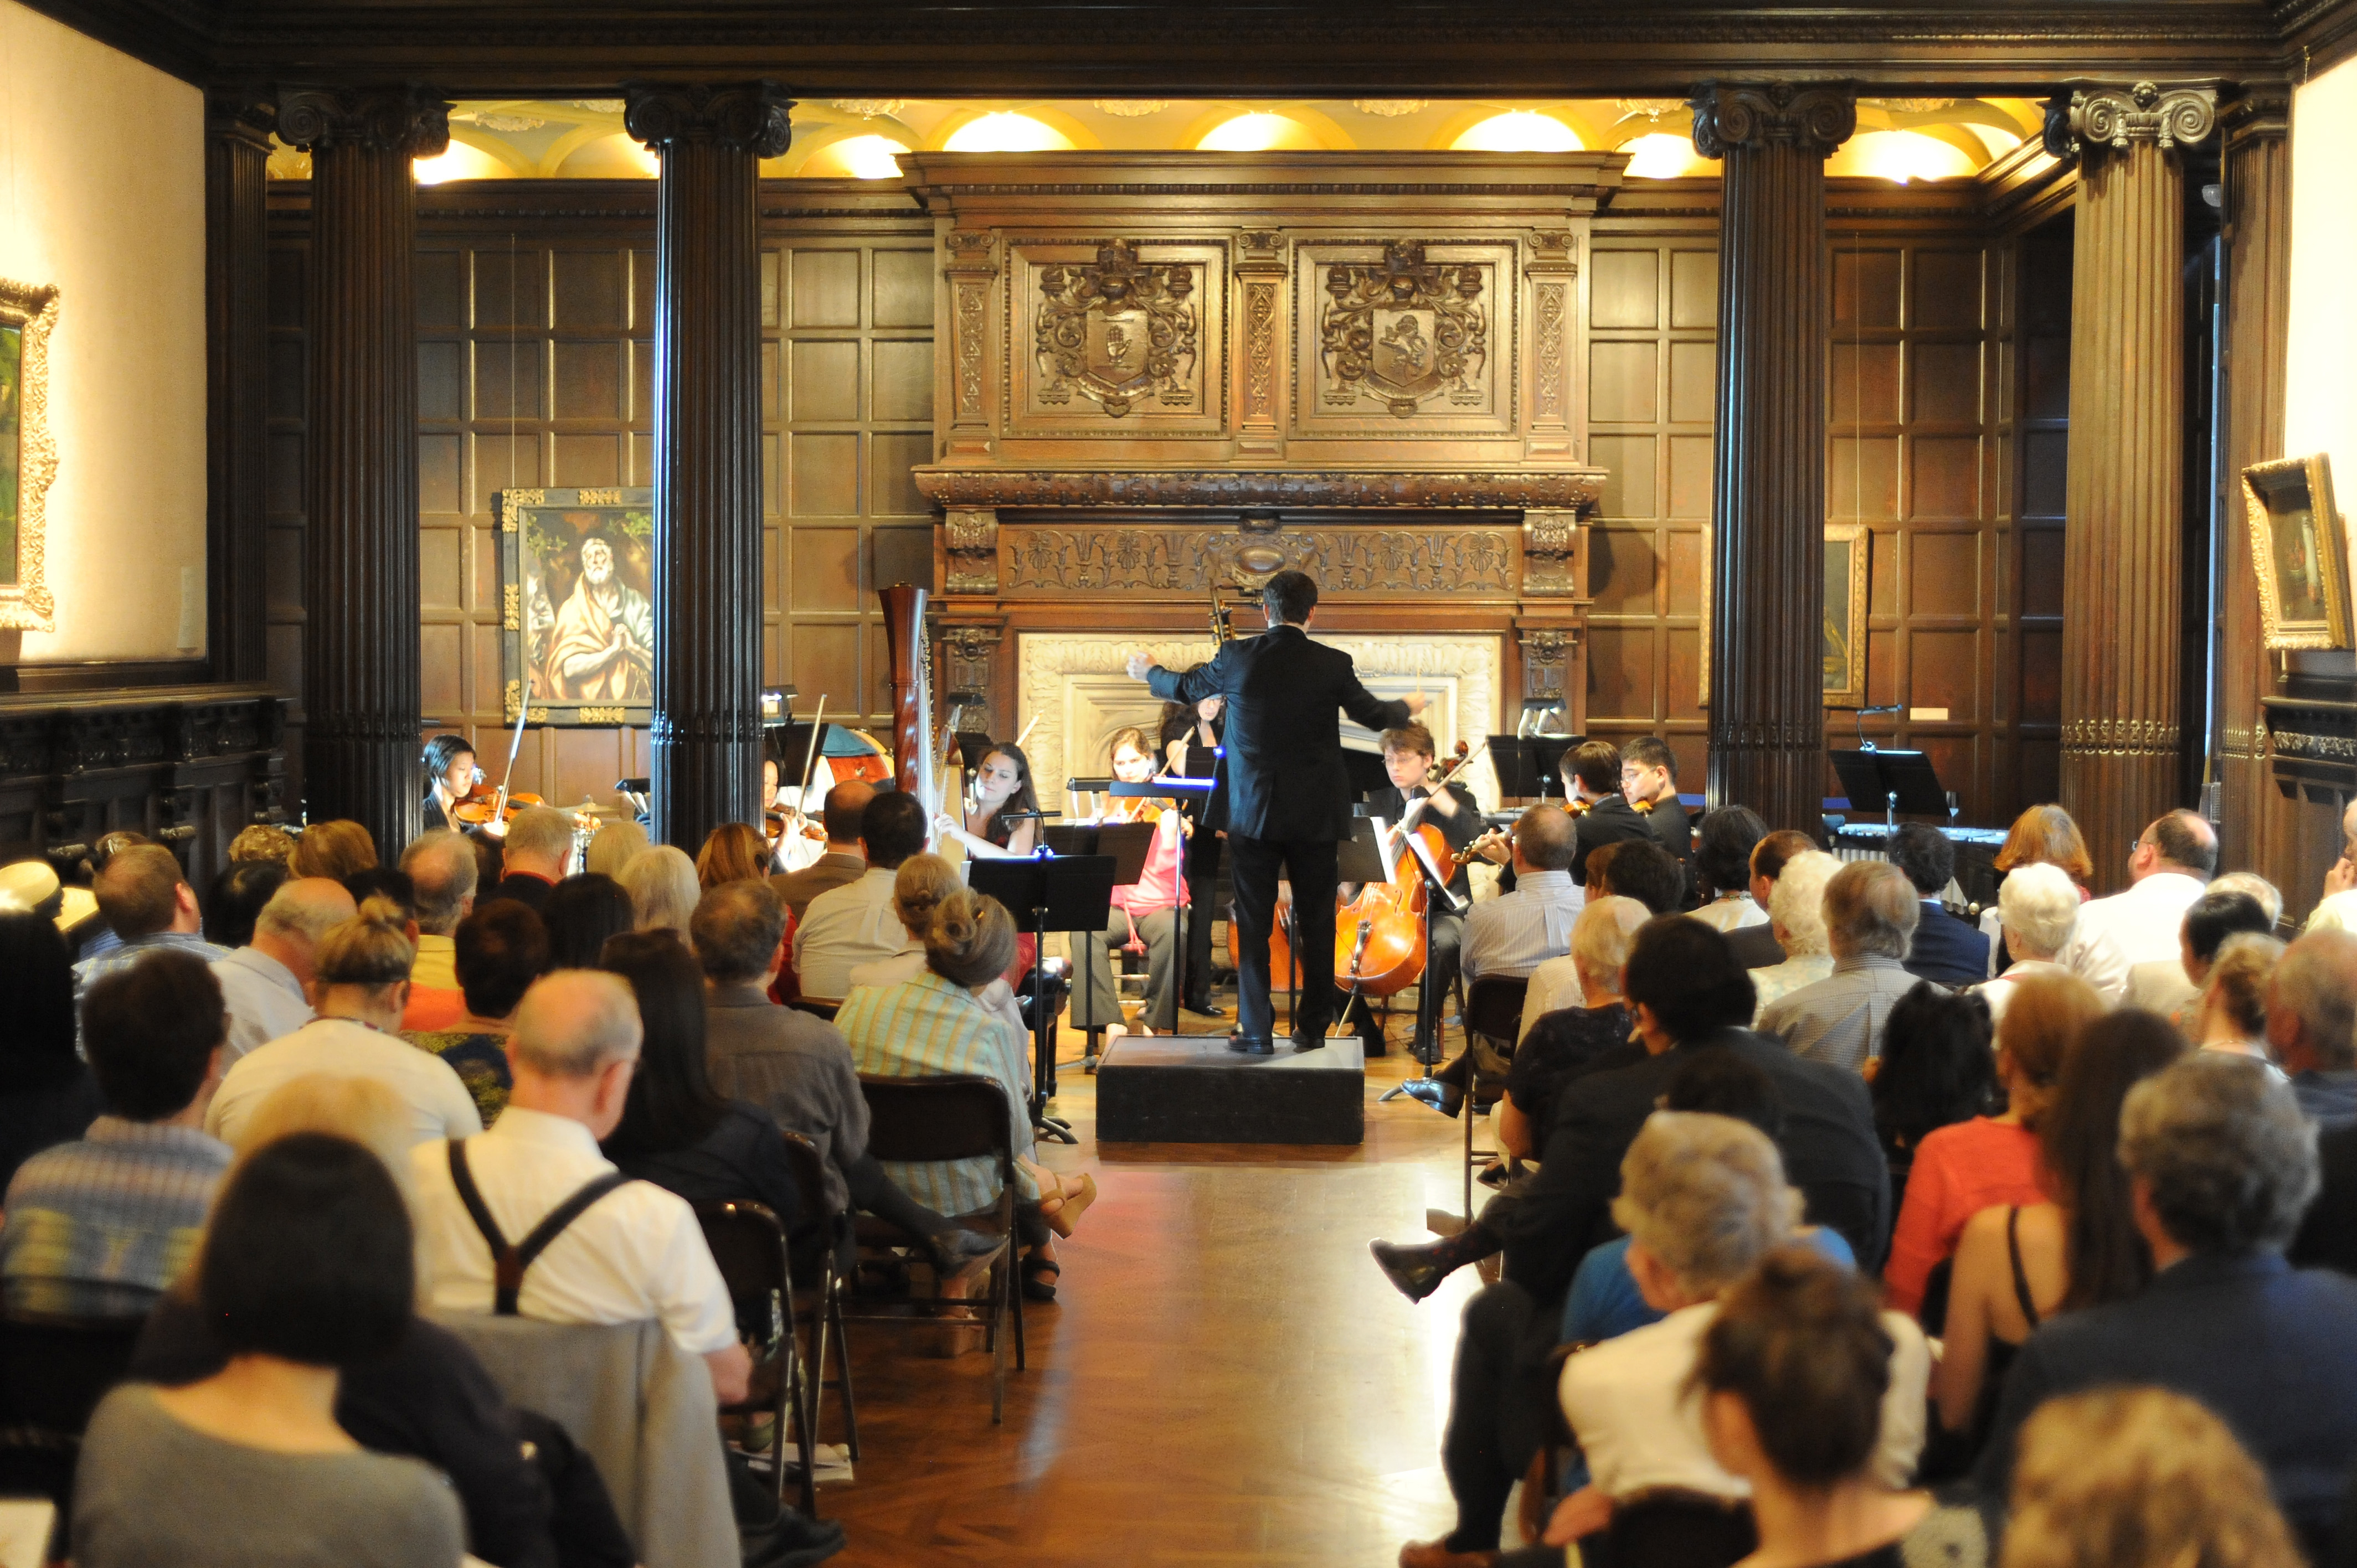 Photograph of Phillips Music Room performance with seated audience